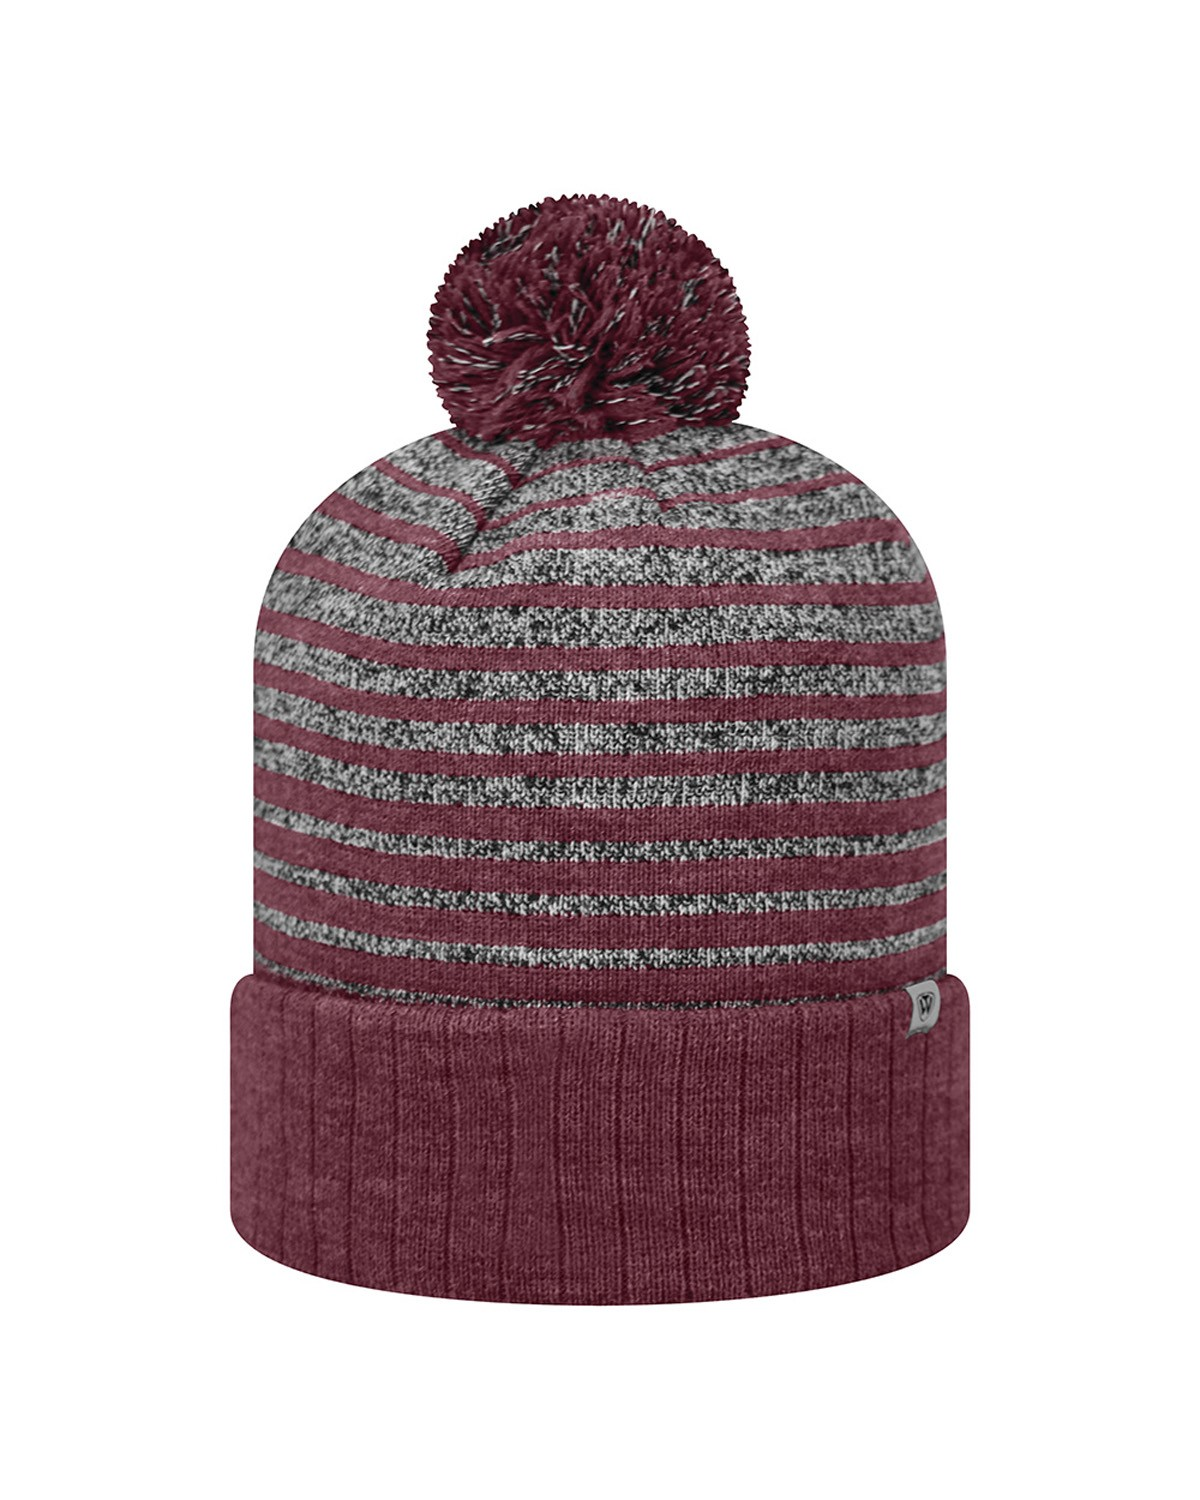 TW5001 Top Of The World BURGUNDY